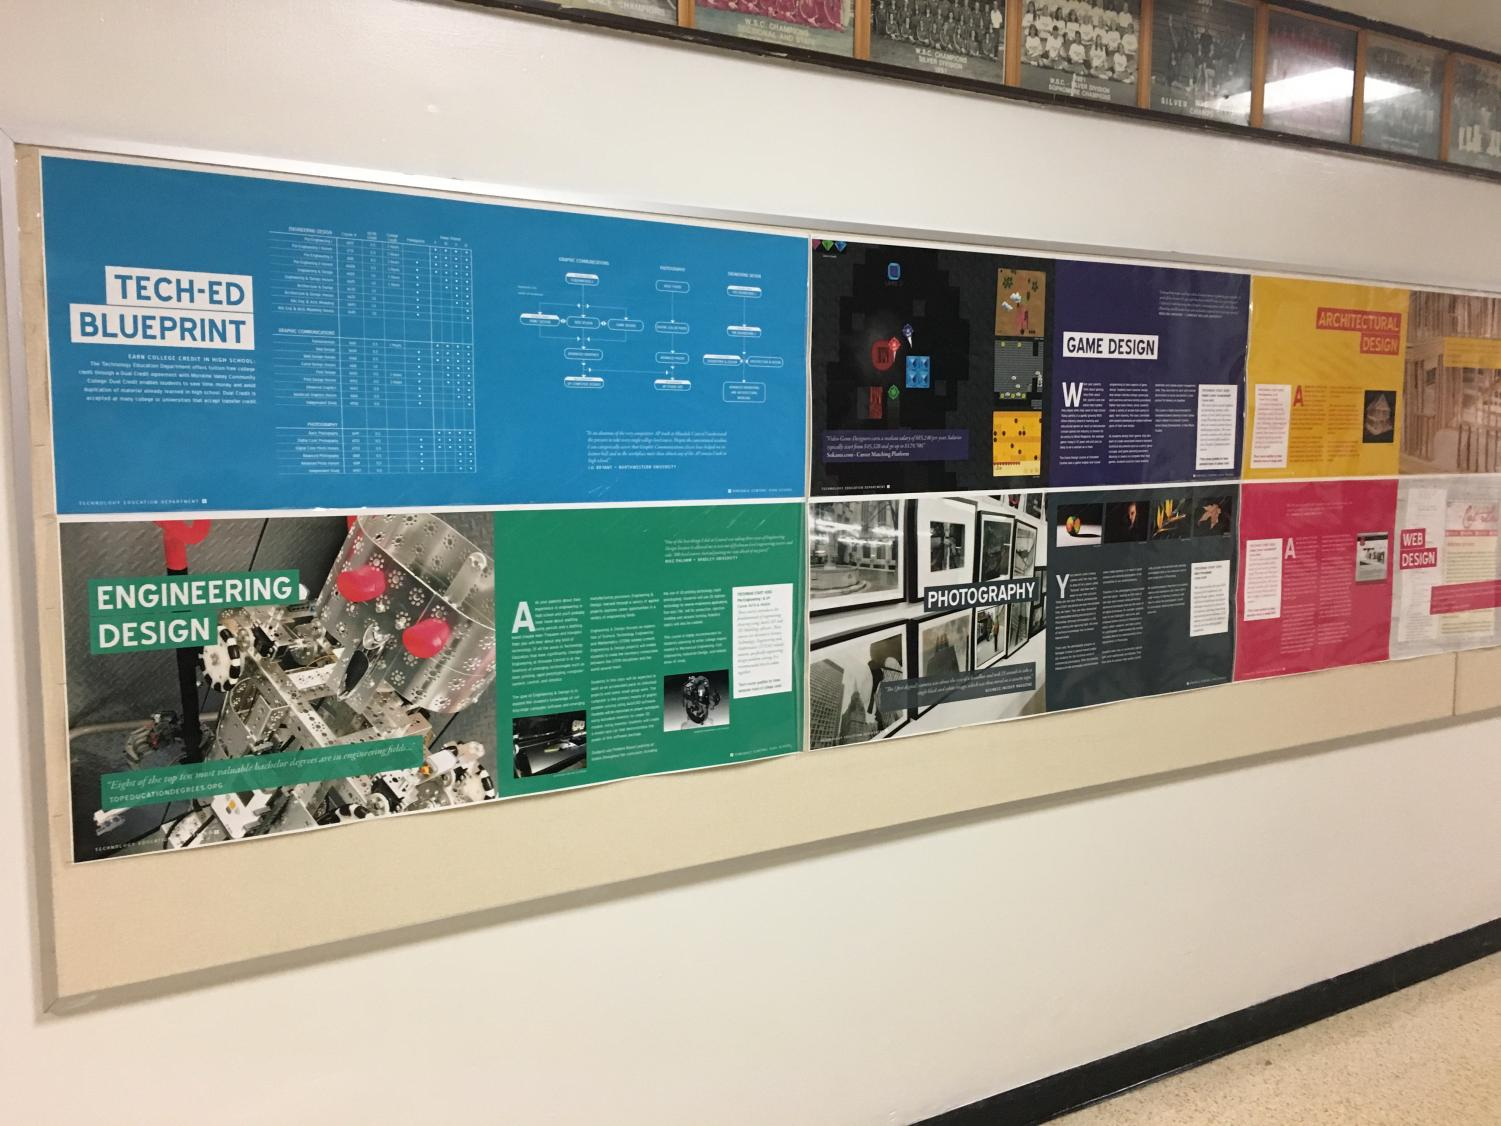 Information for many unknown courses is displayed on posters throughout the halls.